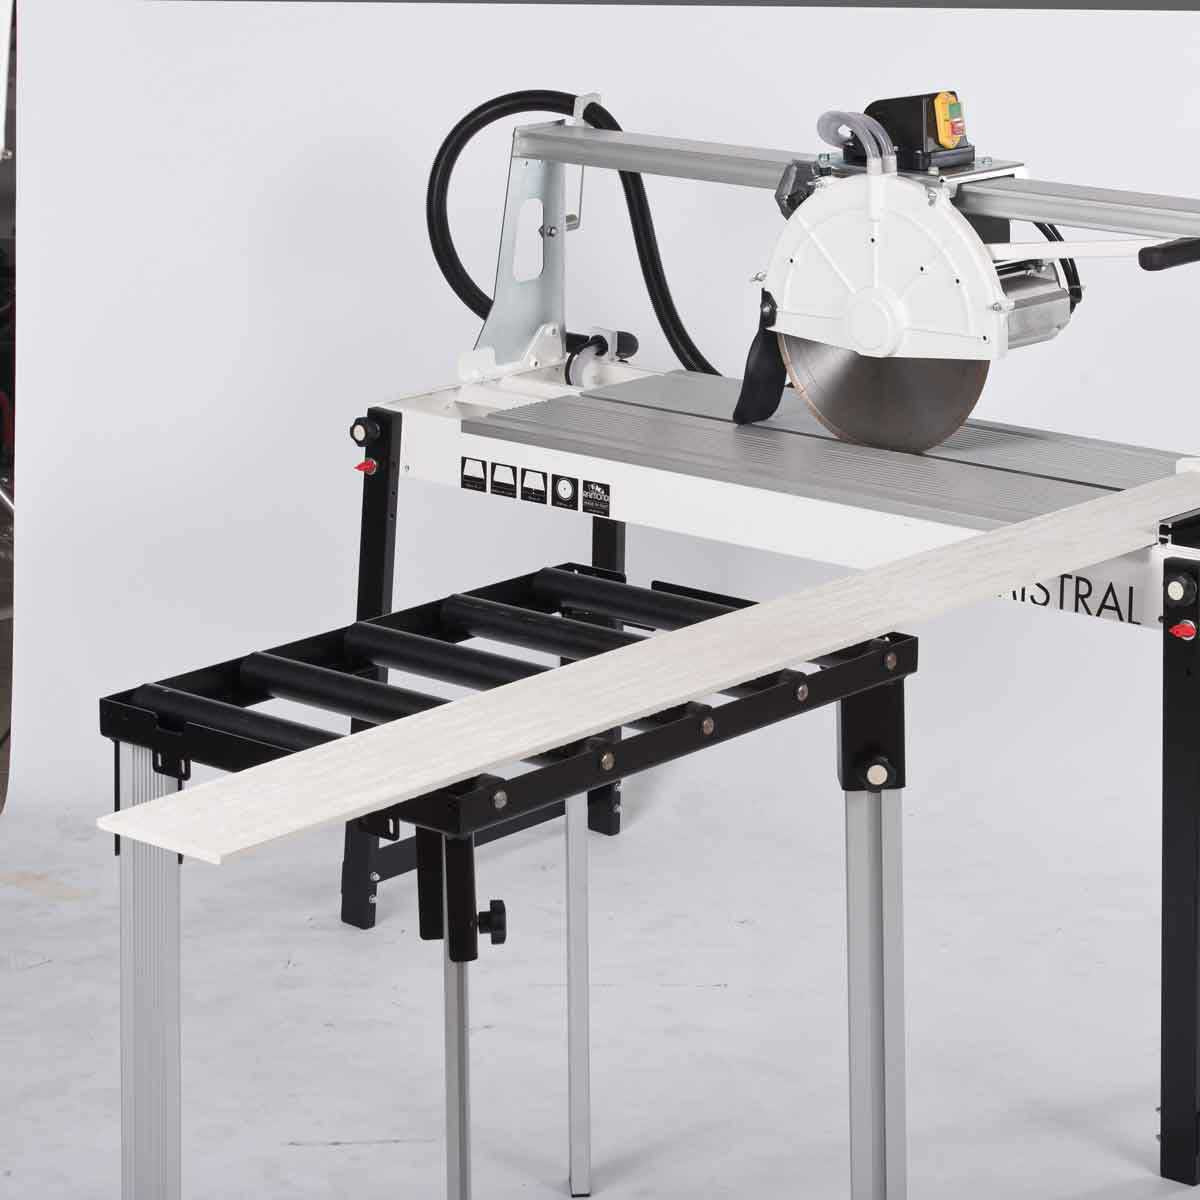 Raimondi Table Extension on Mistral Rail Saw